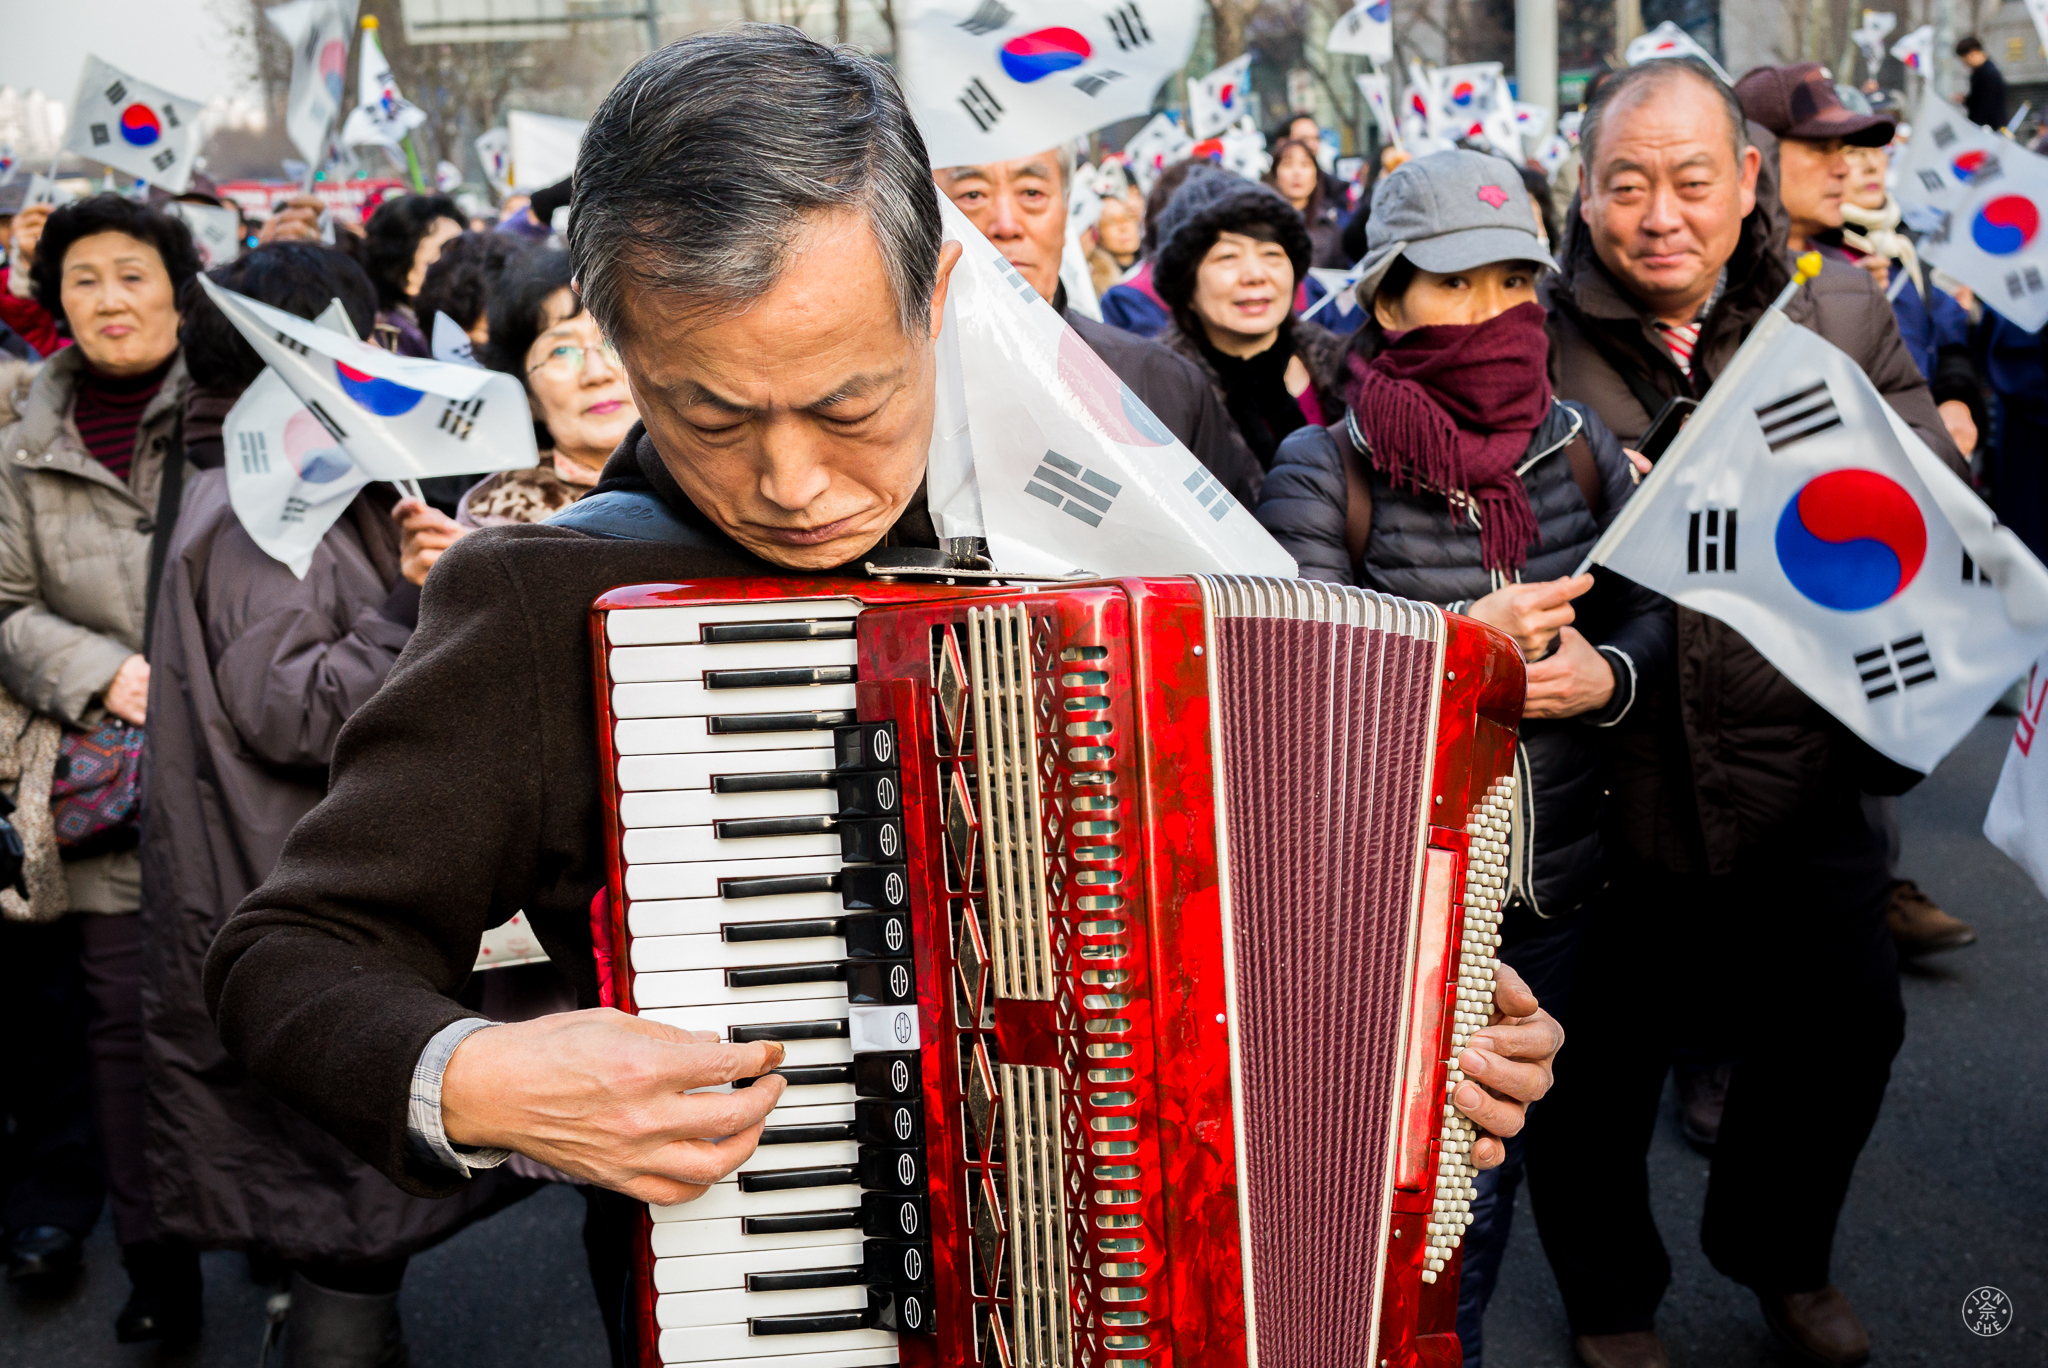 """""""The Music of Protest"""".  A Korean gentleman plays his accordion to voice his protest, in a peaceful demonstration attended by tens of thousands of the republic's citizens in Gangnam, the fashionable district of Seoul. Seoul, South Korea.January 2017. © Jon She. Leica M-P (Typ 240), Leica Summilux-M 35mm f/1.4 ASPH (FLE)."""